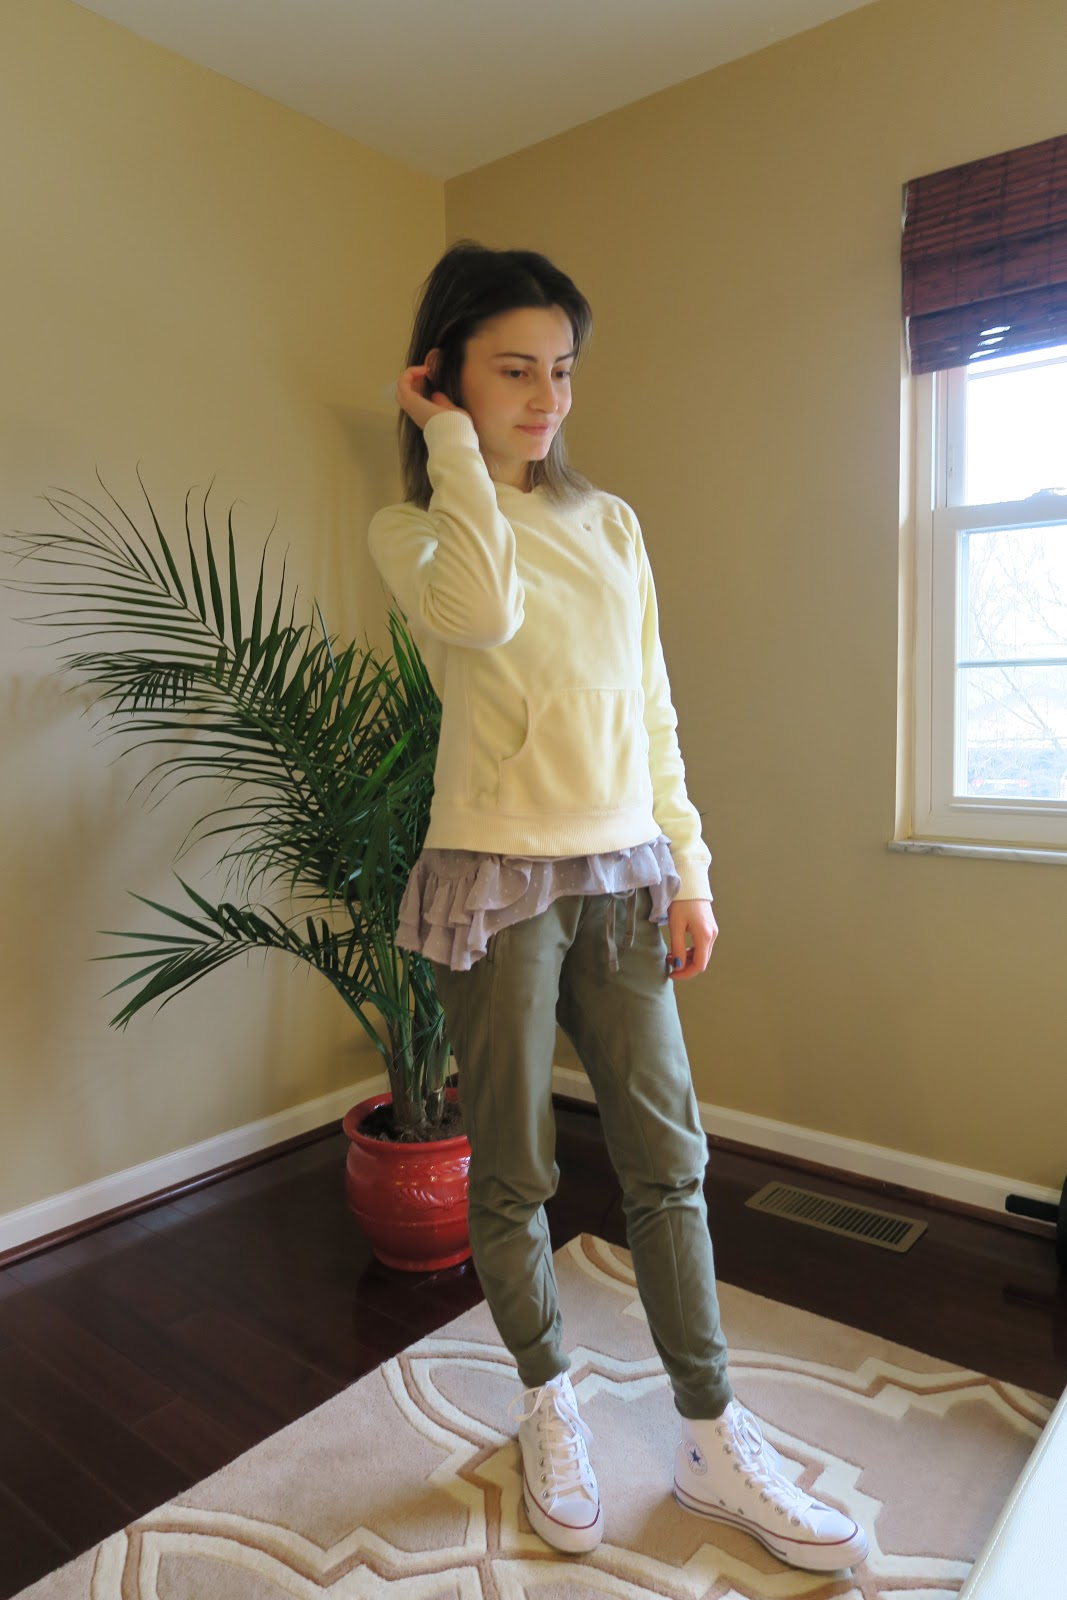 Olive Green Joggers, Ruffles, Sweatshirt, Duckling Yellow, Fashion, White High Top Converse, Casual Attire, OOTD, Street Style, Simplistic, Fashion, Style, Photography, Blogger